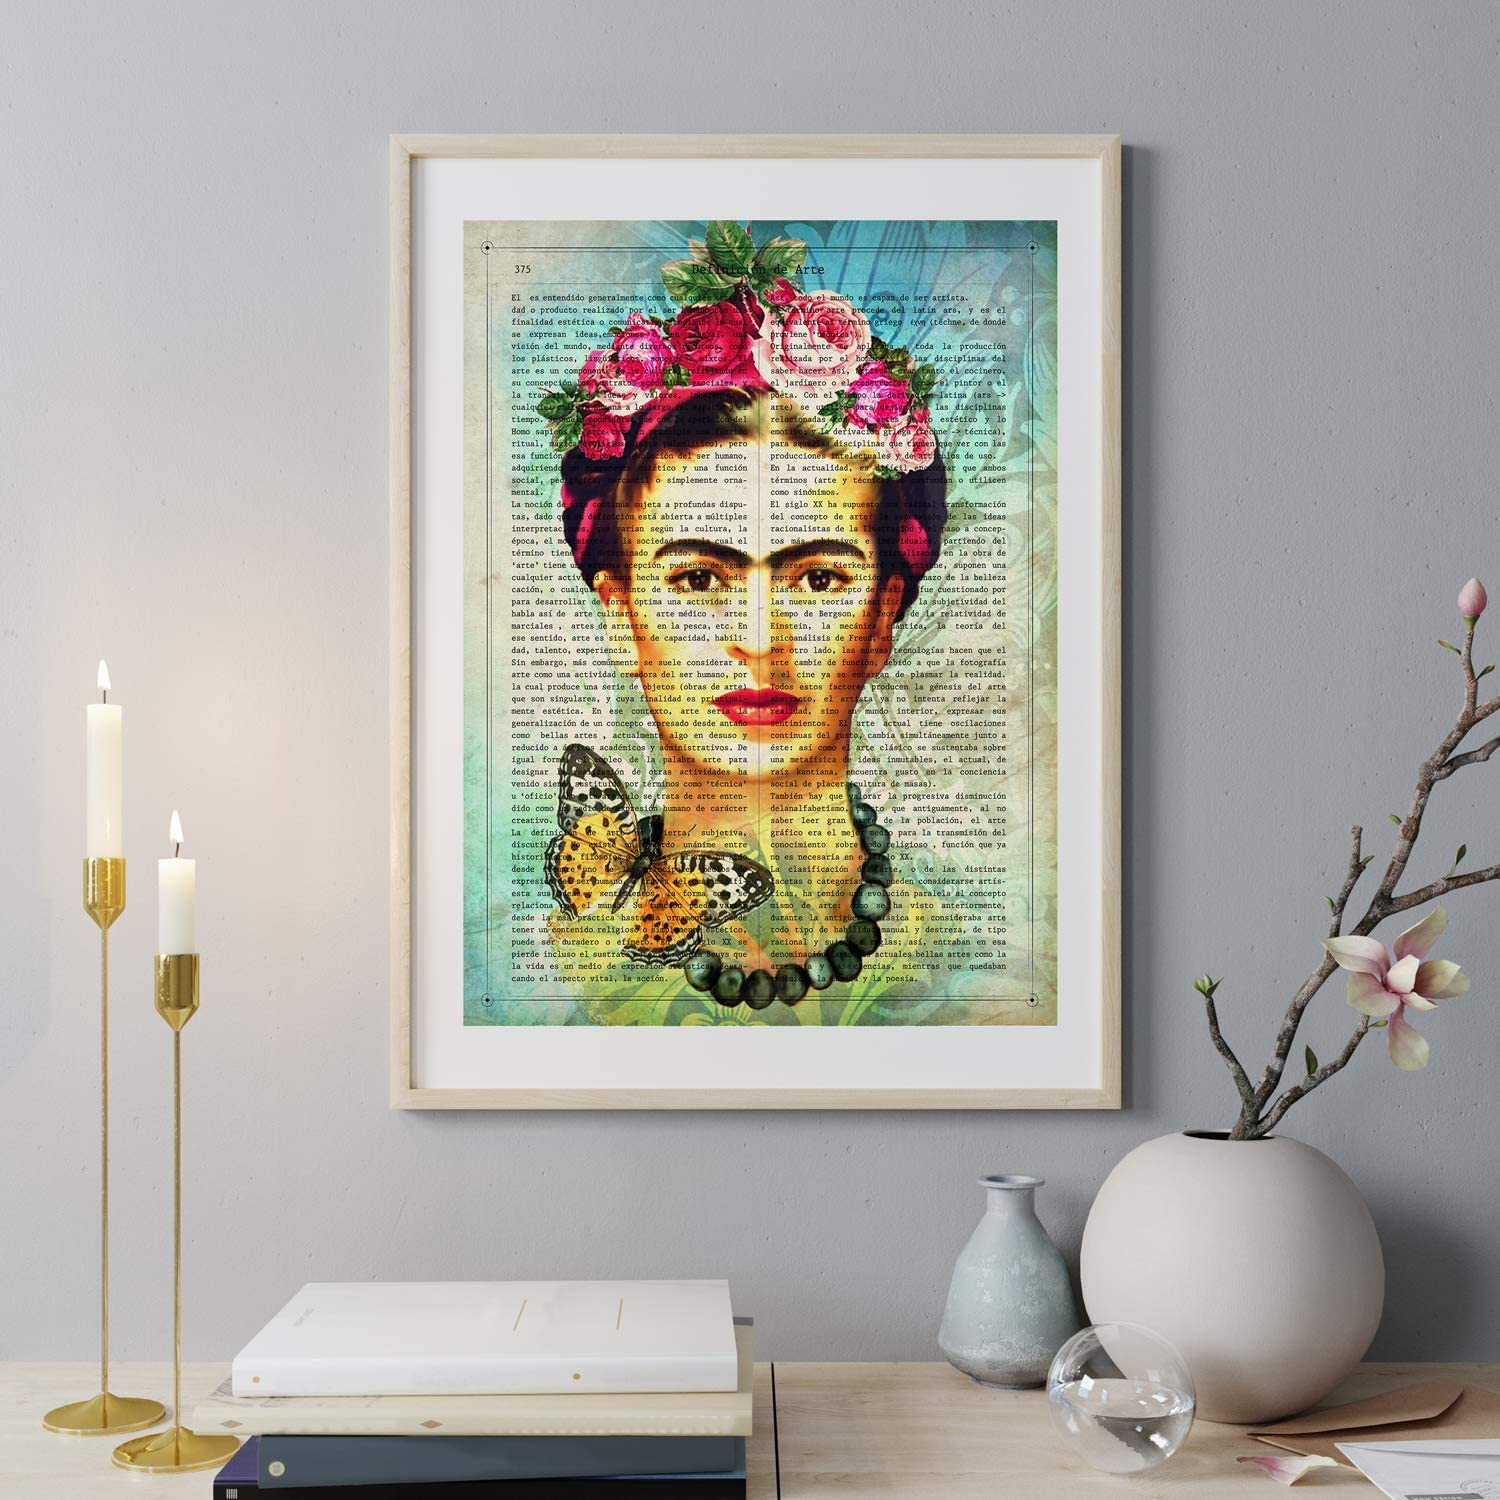 Nacnic Prints Frida Kahlo Definition of Art in Spanish,The Mexican Painter - Tropical wall art, Mexican decorations for home , Mexican wall decor , Aztec art , Chicano art, Mexican Painter . Set of 1 - Unframed 11x17 inch Size - 250g Paper - Beautiful Poster Painting for Home Office Living Room